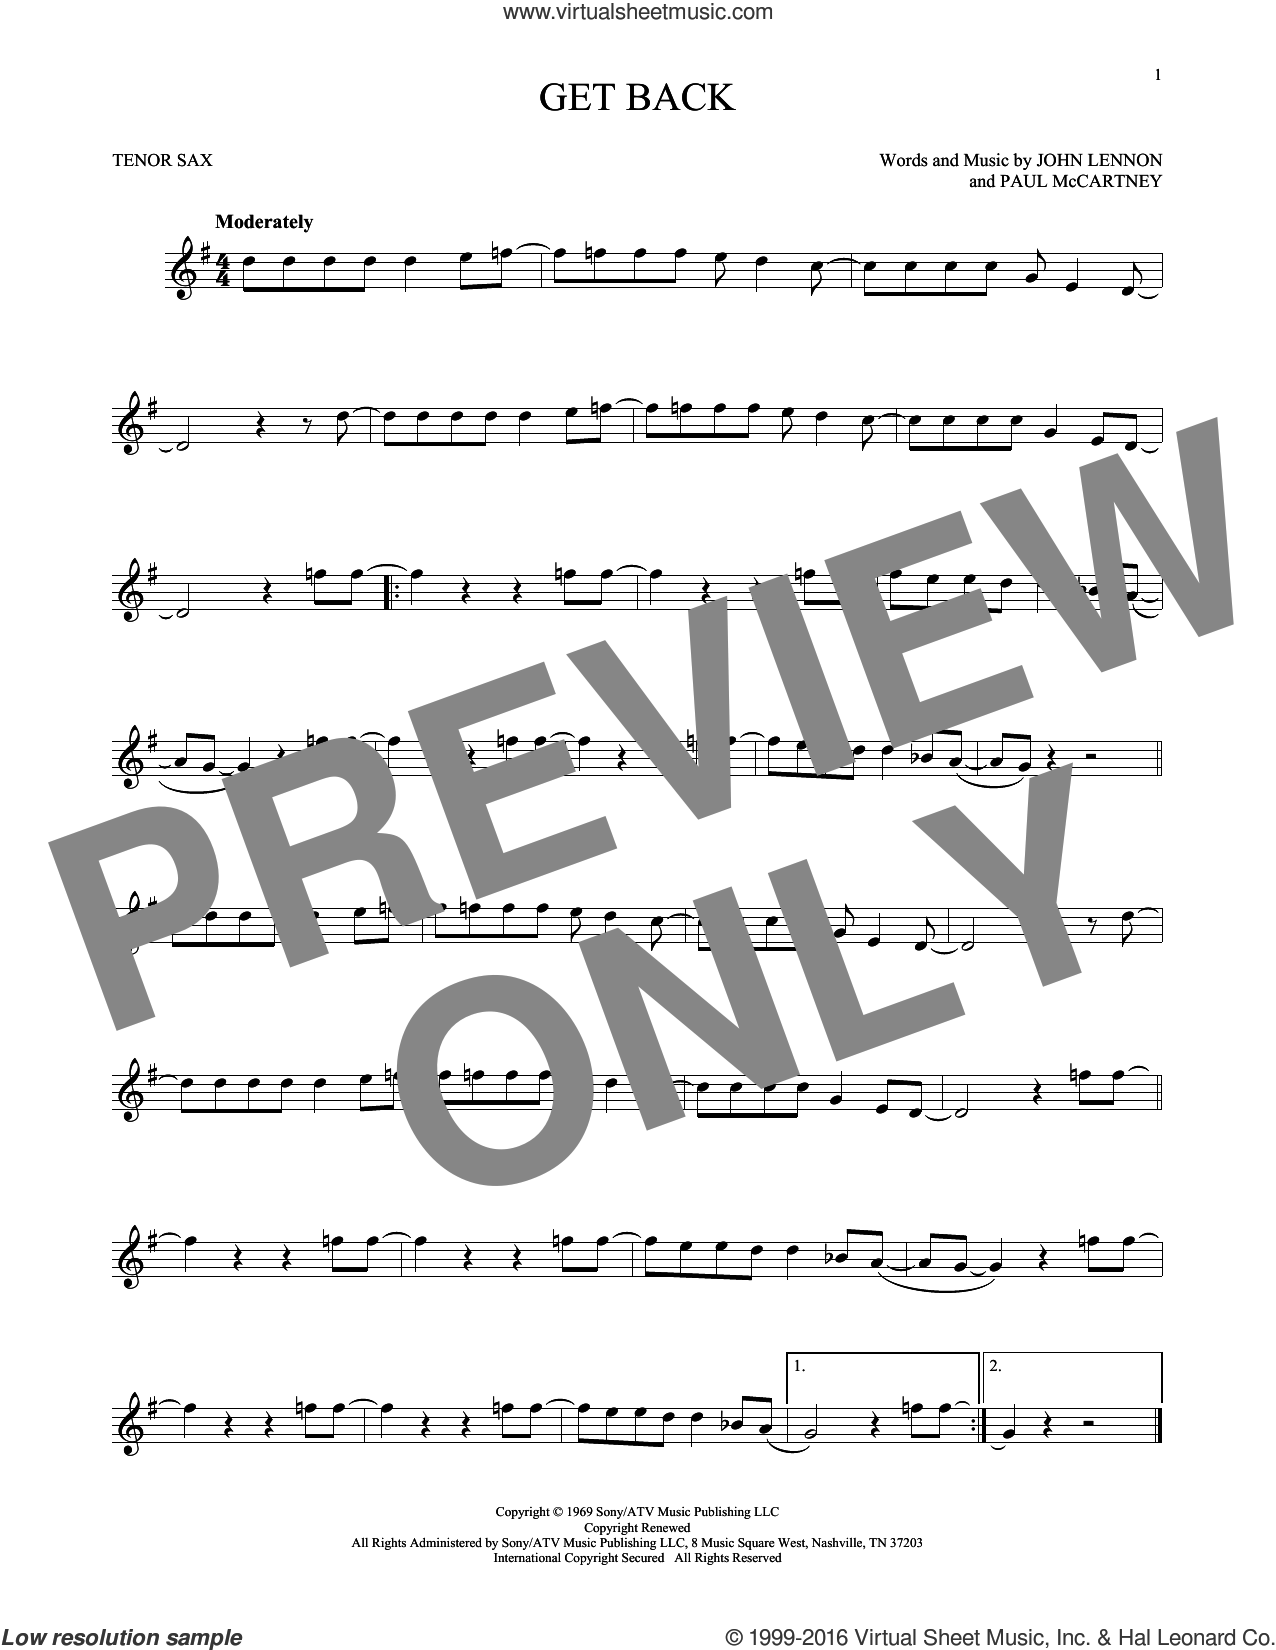 Get Back sheet music for tenor saxophone solo by The Beatles, John Lennon and Paul McCartney, intermediate skill level